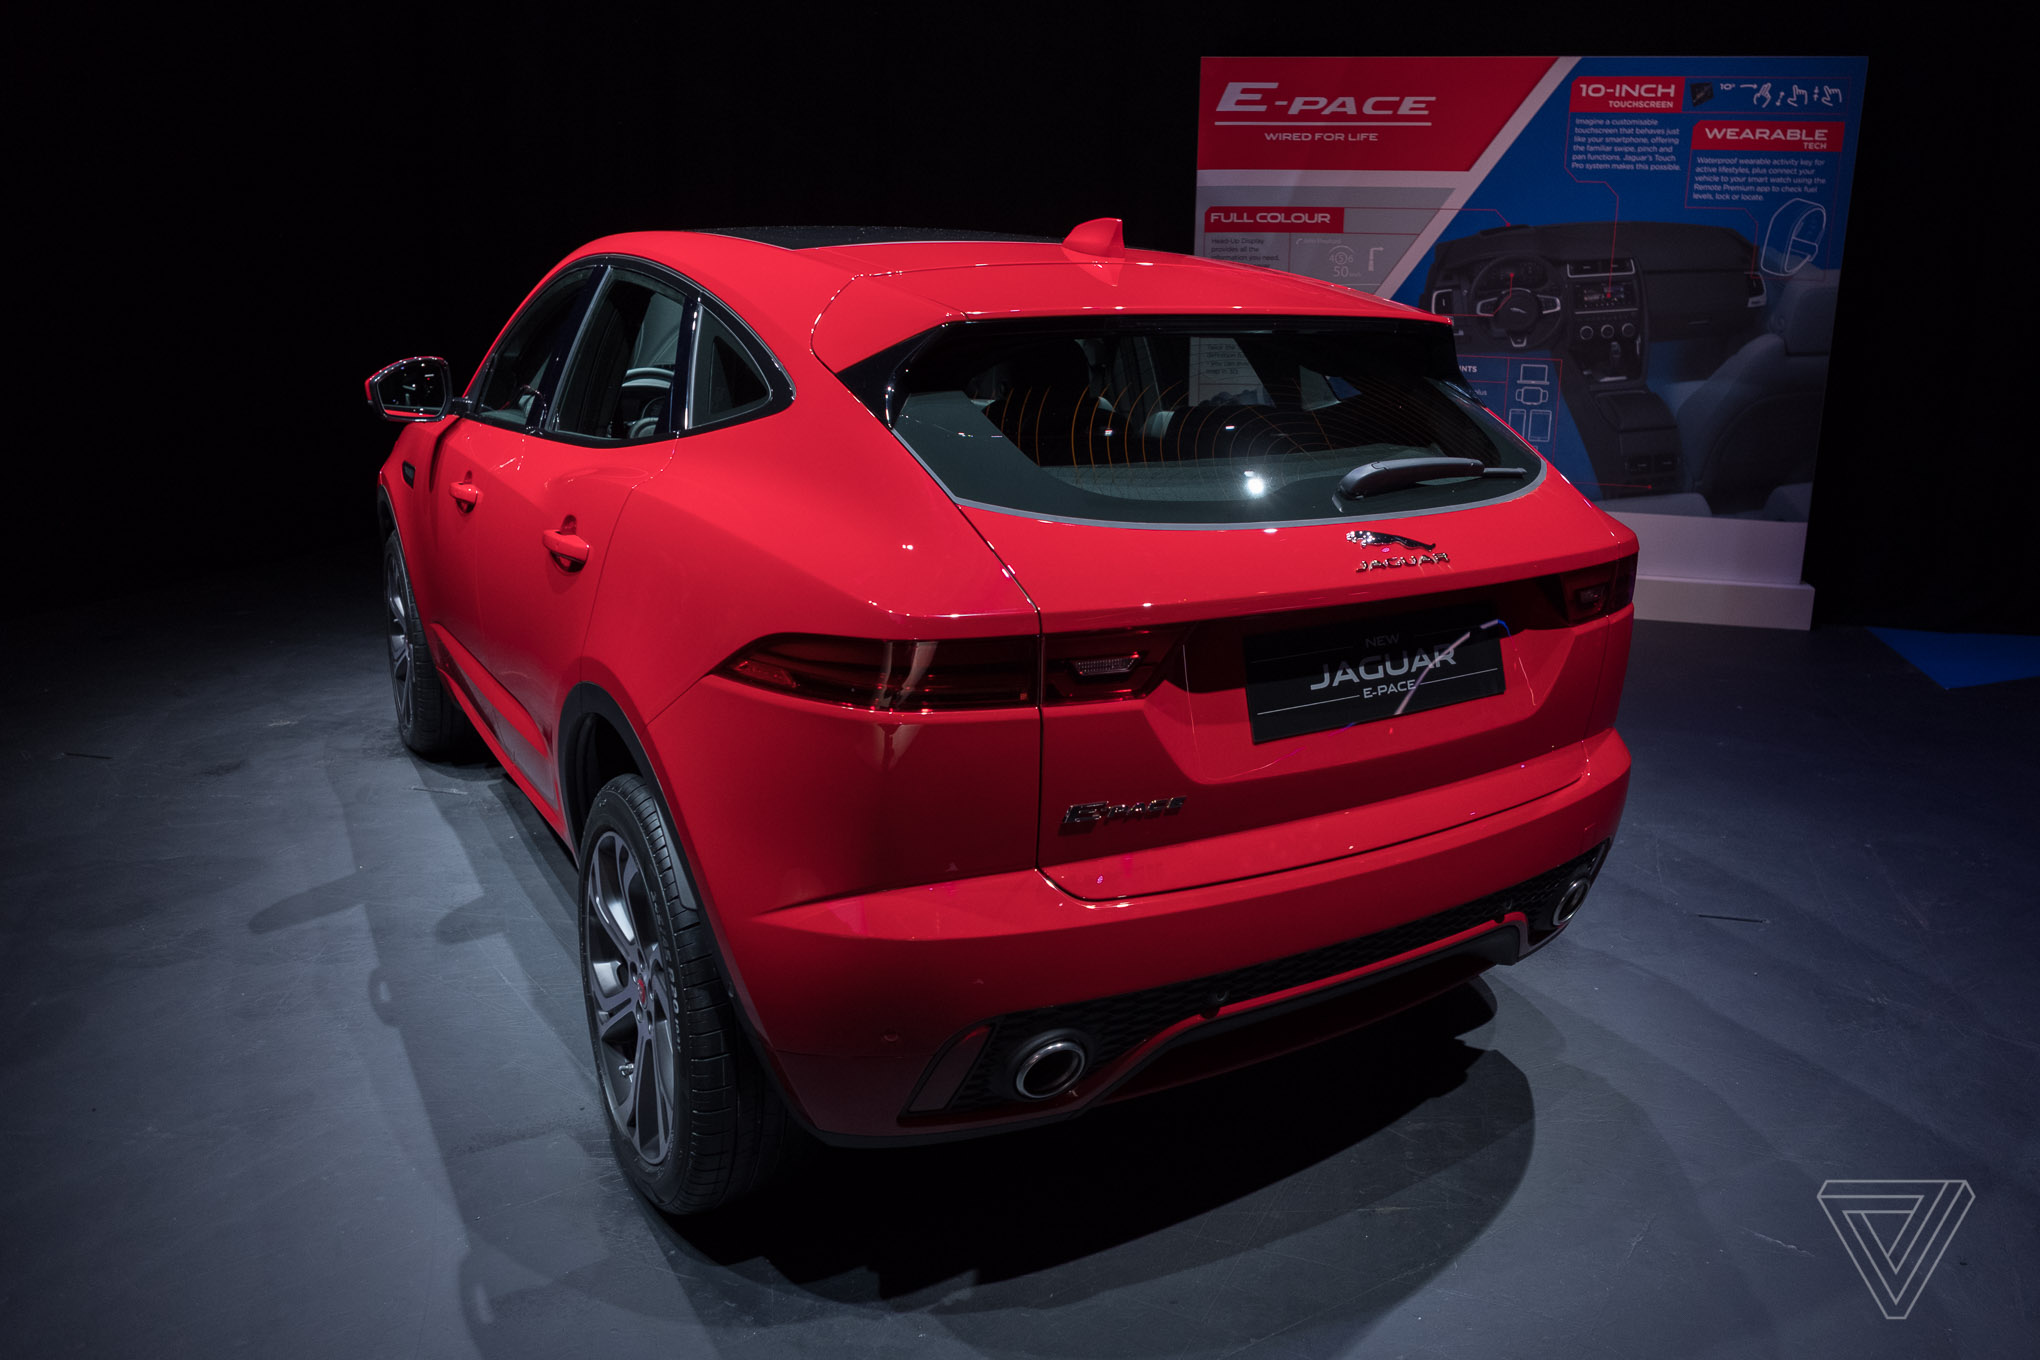 Jaguar Reveals E Pace The Crossover Suv For Millennial Couples F 2017 Interior Debut In London July Photo By Vlad Savov Verge